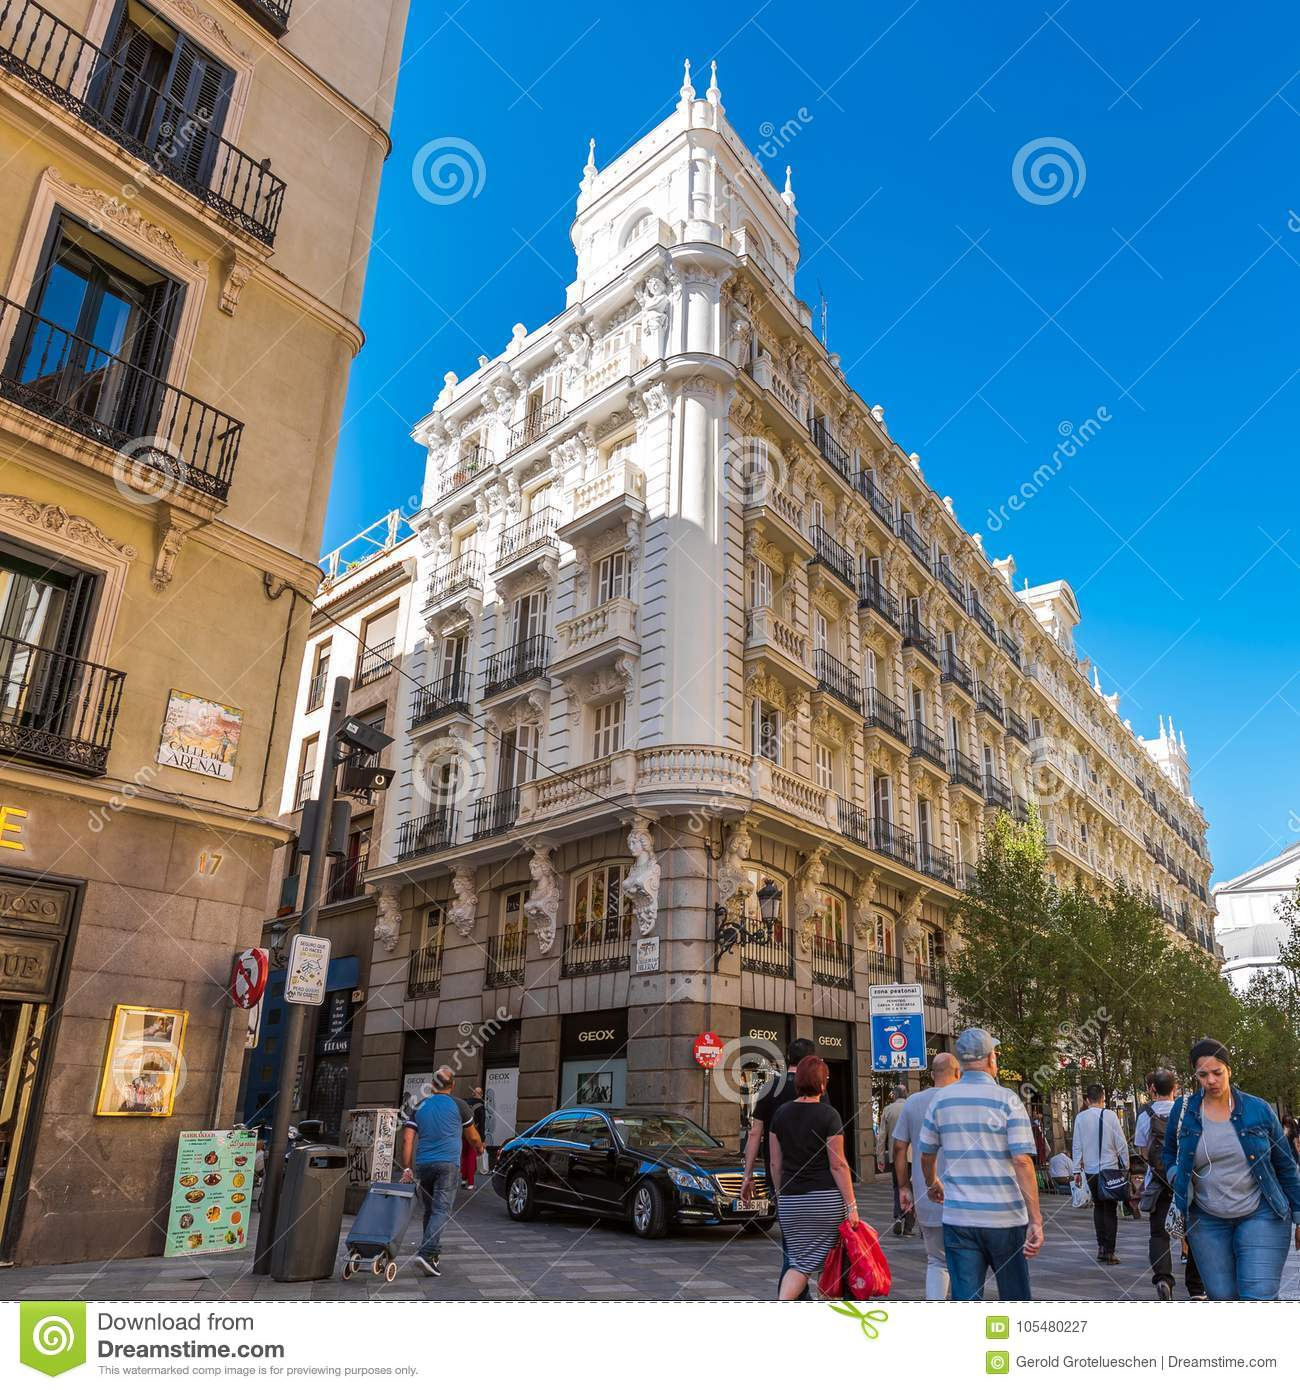 Consecutivo monitor Ambiente  MADRID, SPAIN - SEPTEMBER 26, 2017: Beautiful Historical Building Of Old  Architecture In The City Center. Copy Space For Text. Editorial Photography  - Image of european, architecture: 105480227